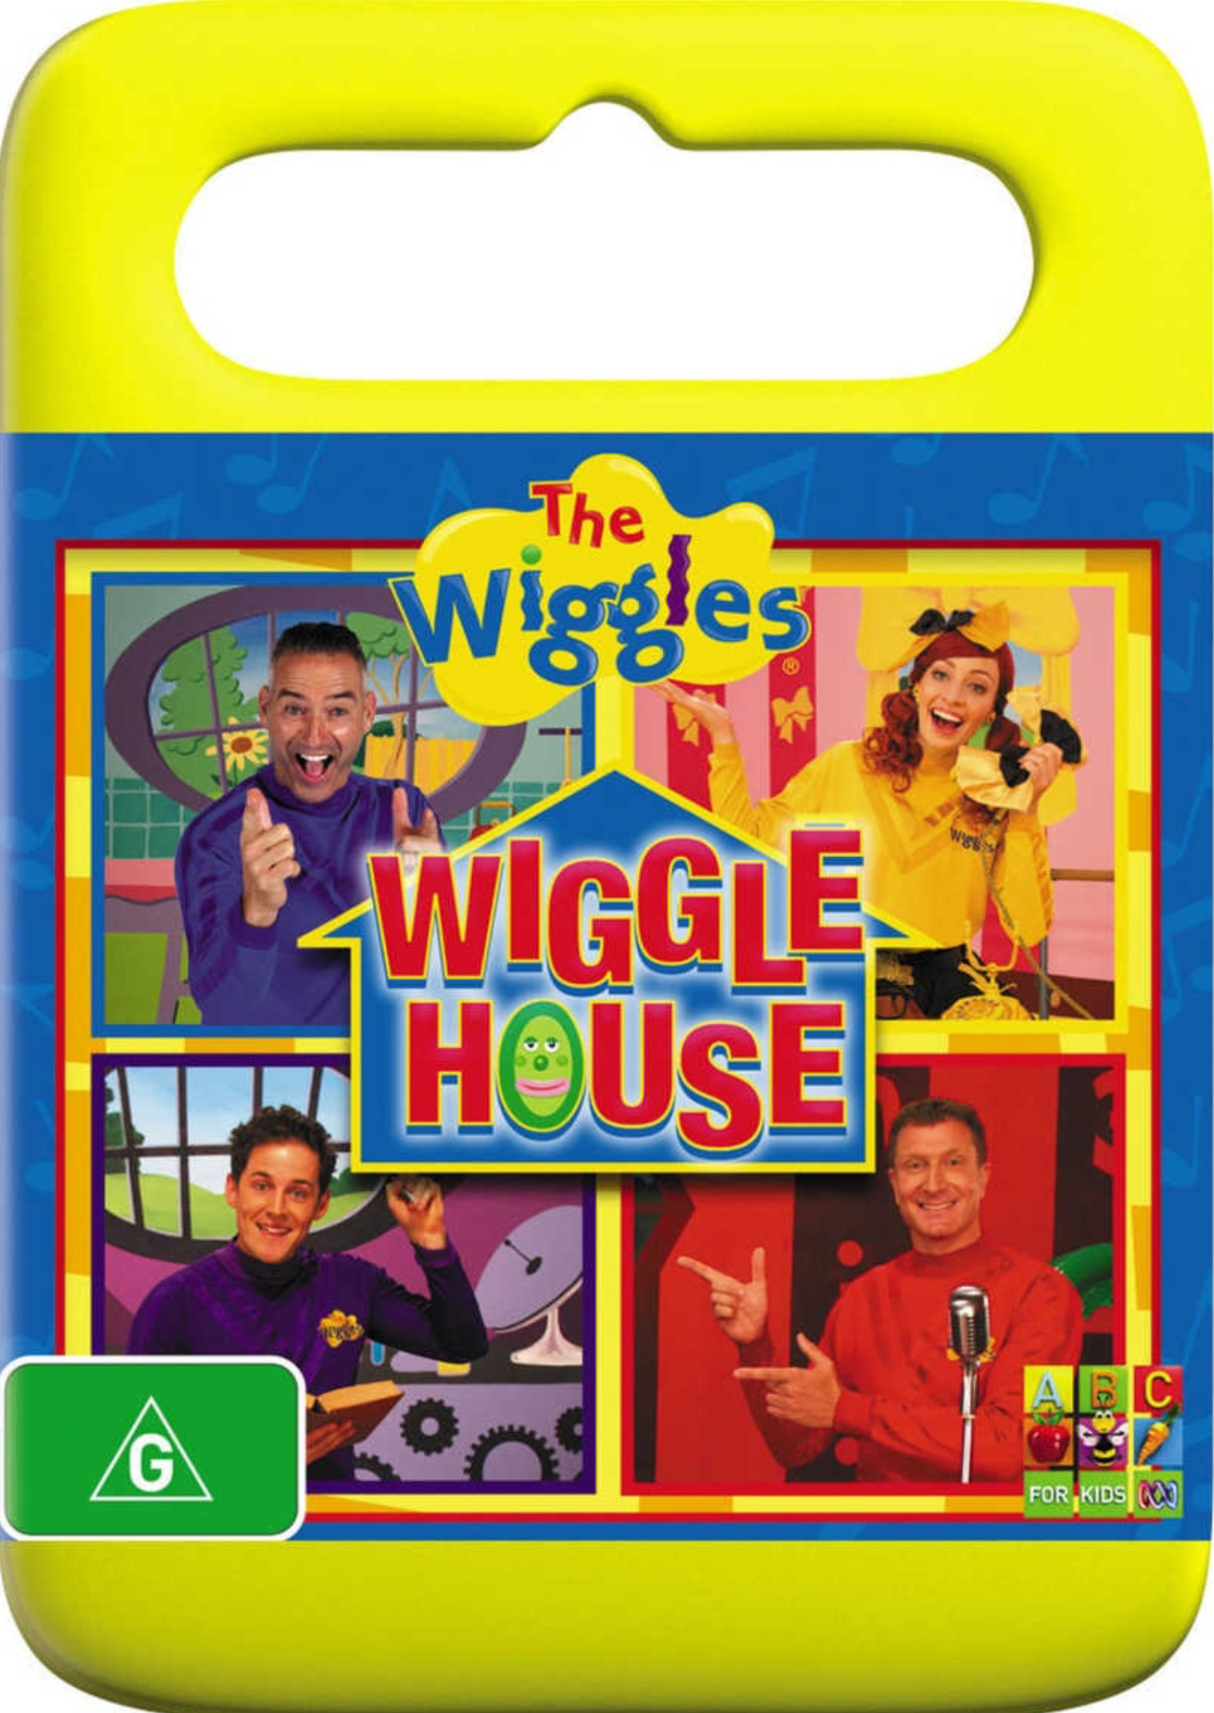 Wiggle House (video)